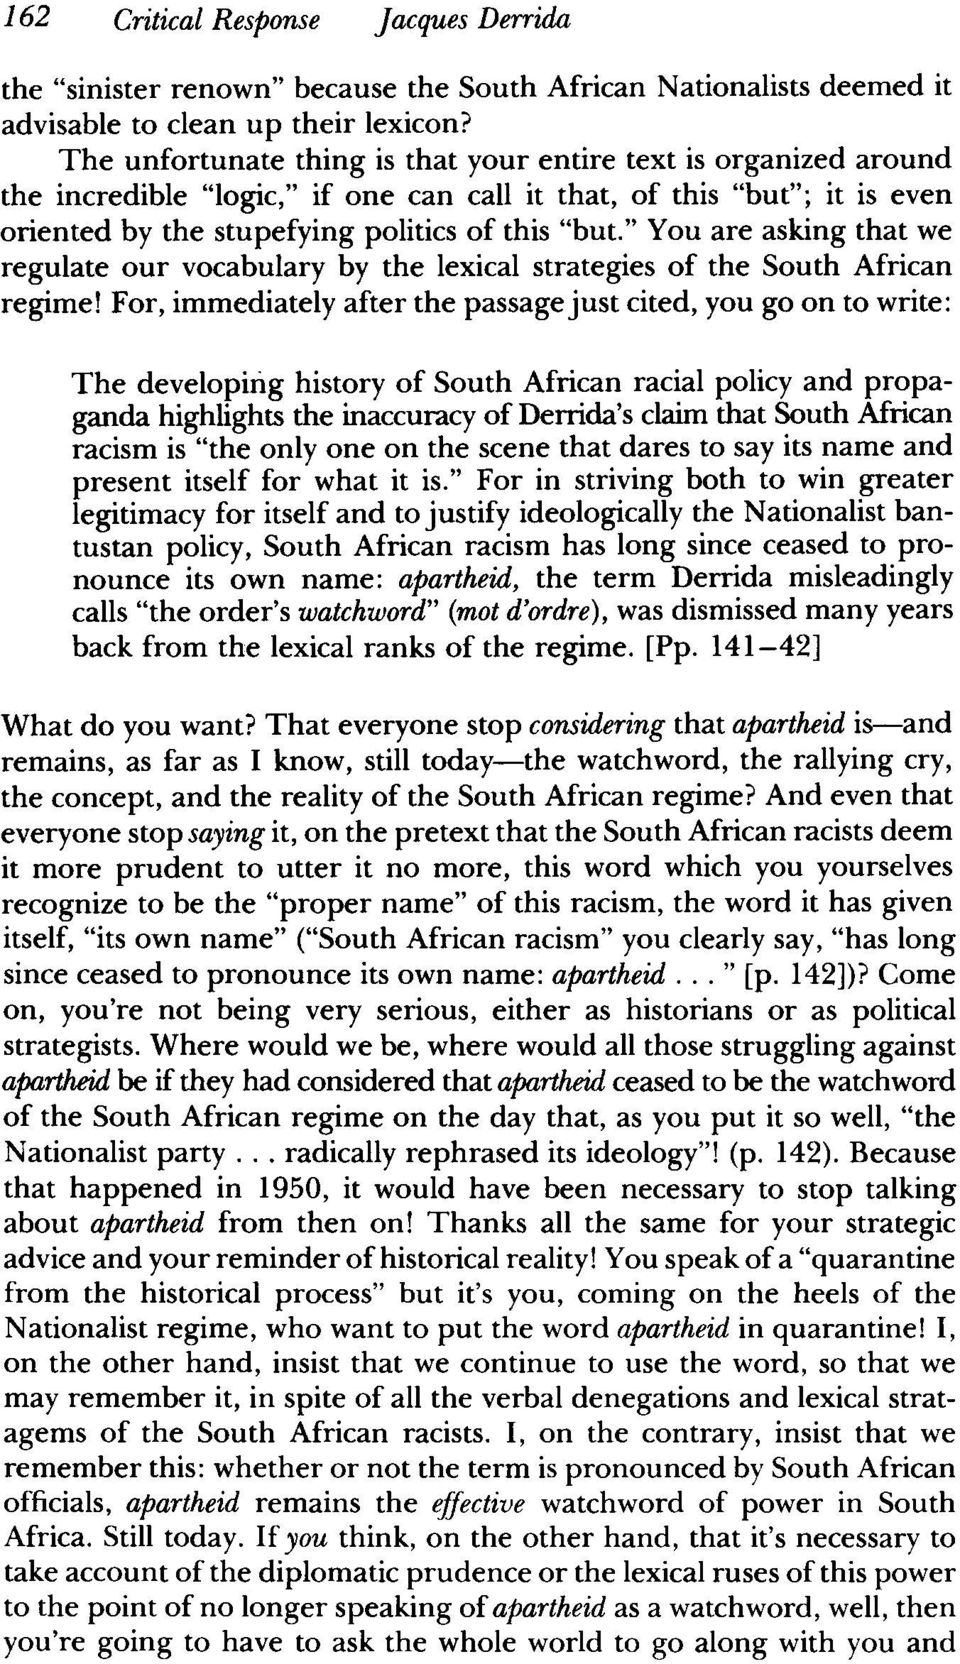 """ You are asking that we regulate our vocabulary by the lexical strategies of the South African regime!"